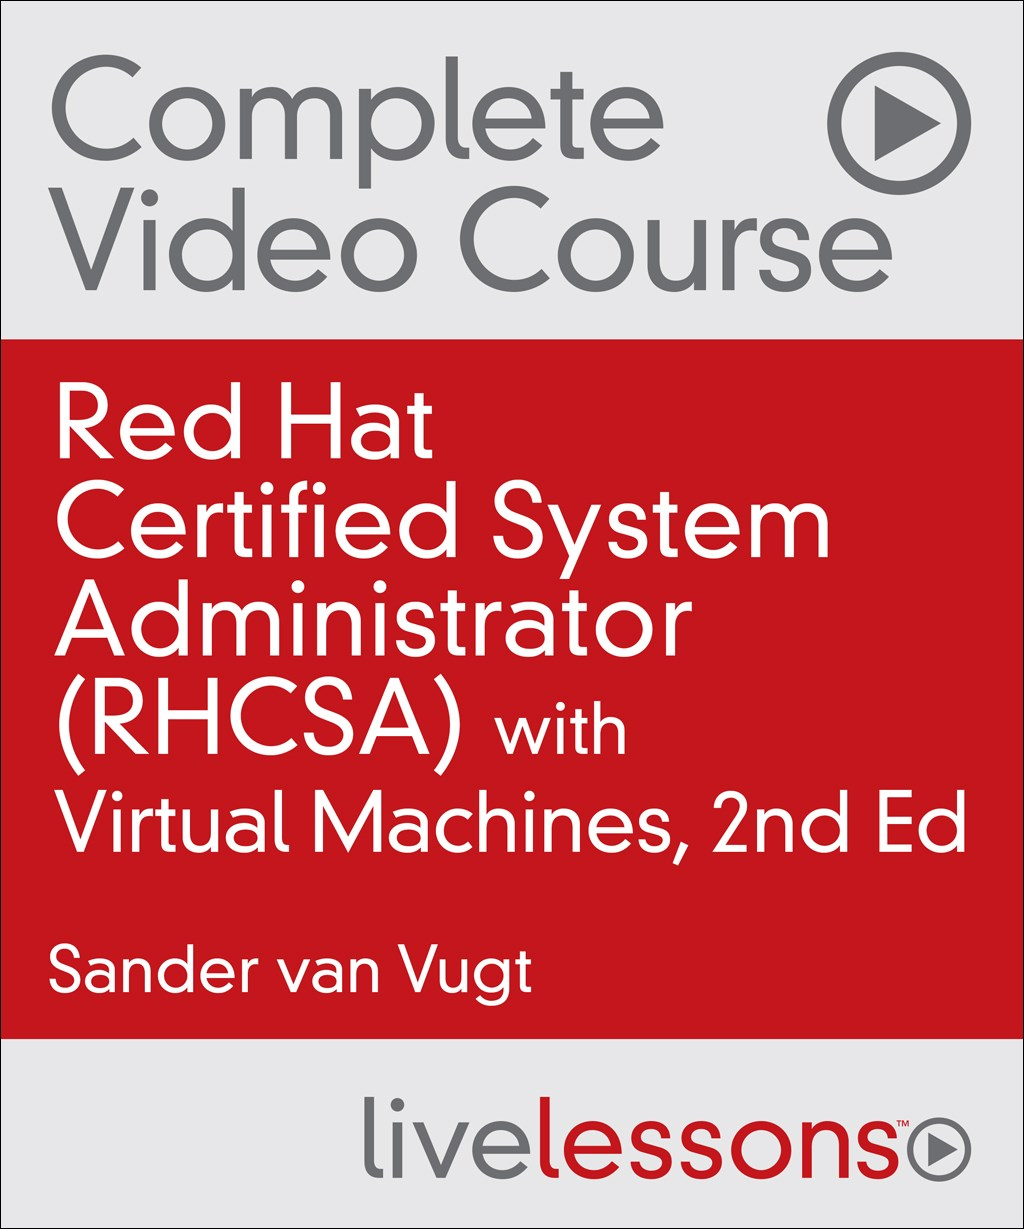 Red Hat Certified System Administrator (RHCSA) Complete Video Course with Virtual Machines, 2nd Edition